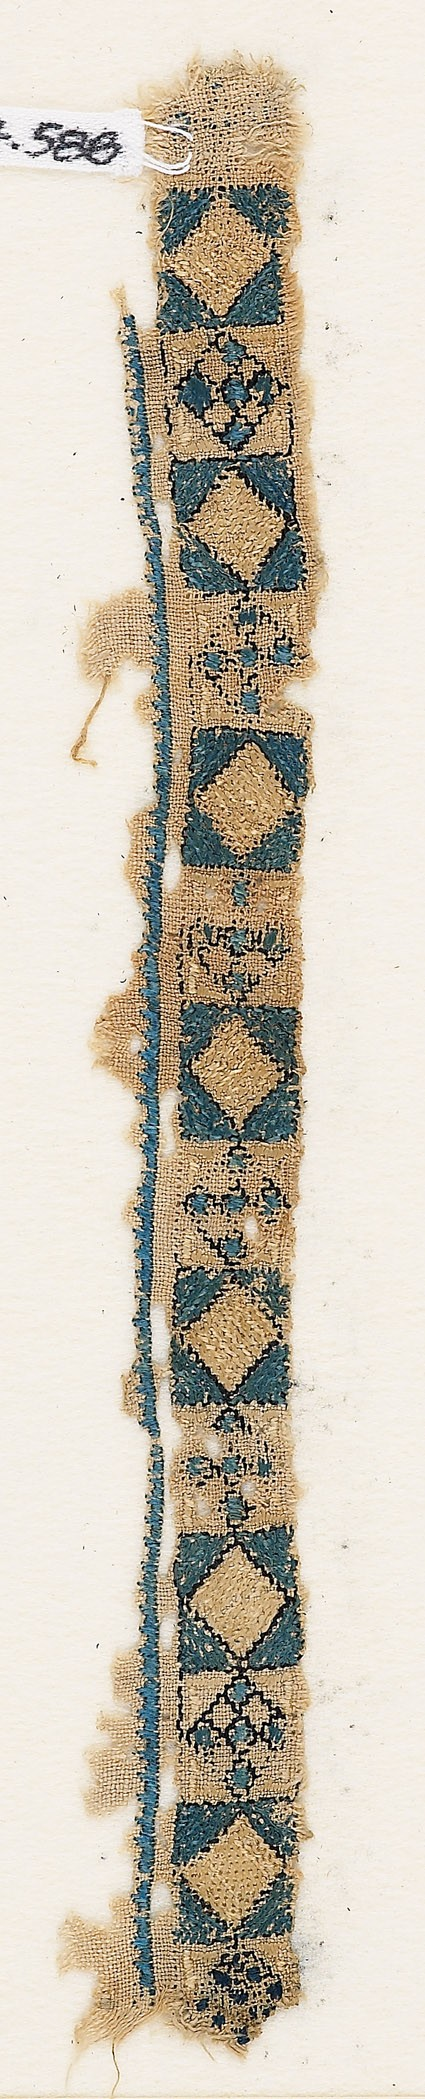 Textile fragment with band of diamond-shapes and crosses